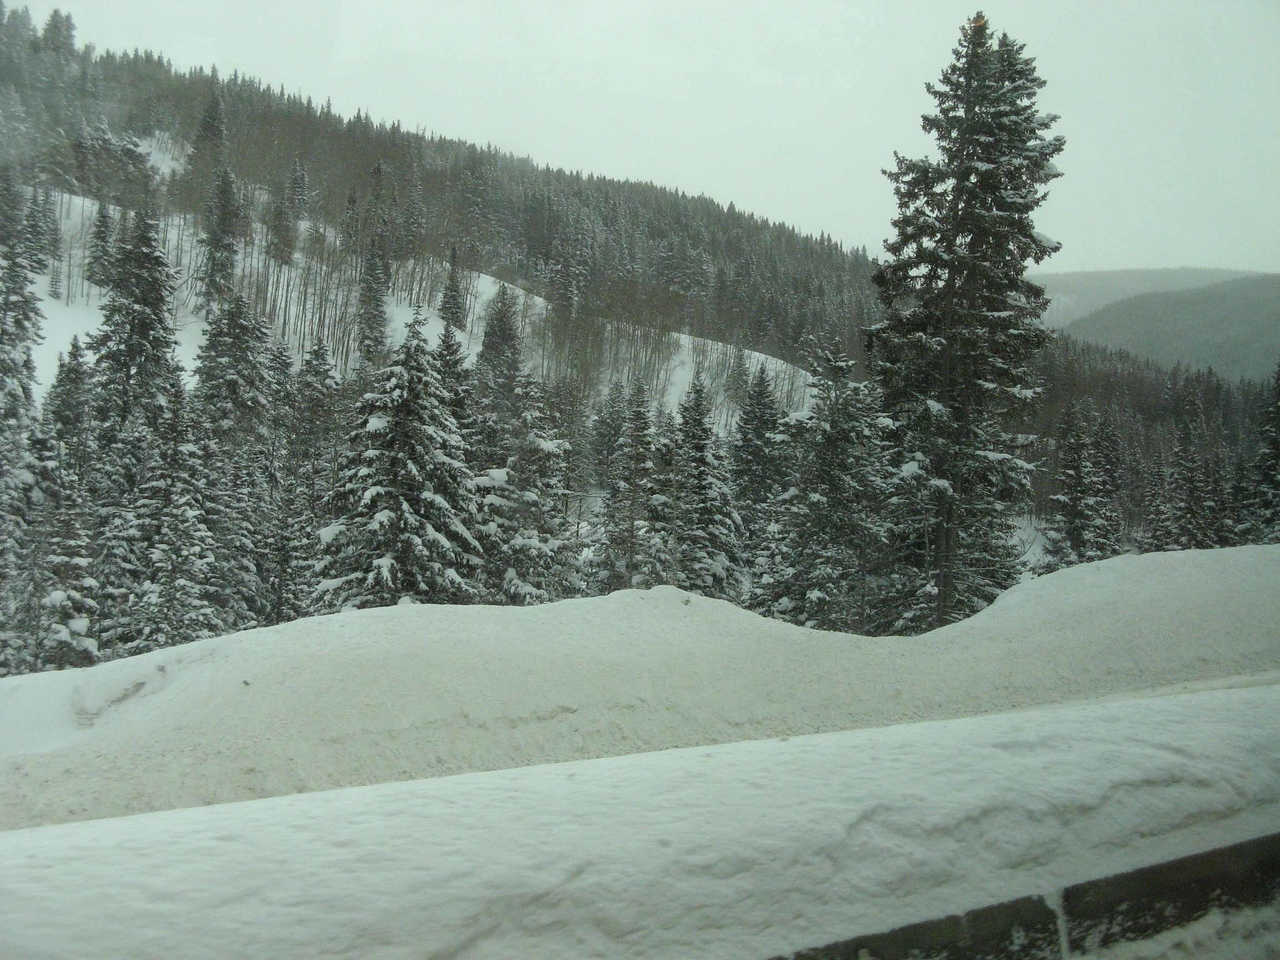 42 Snow near Vail Pass